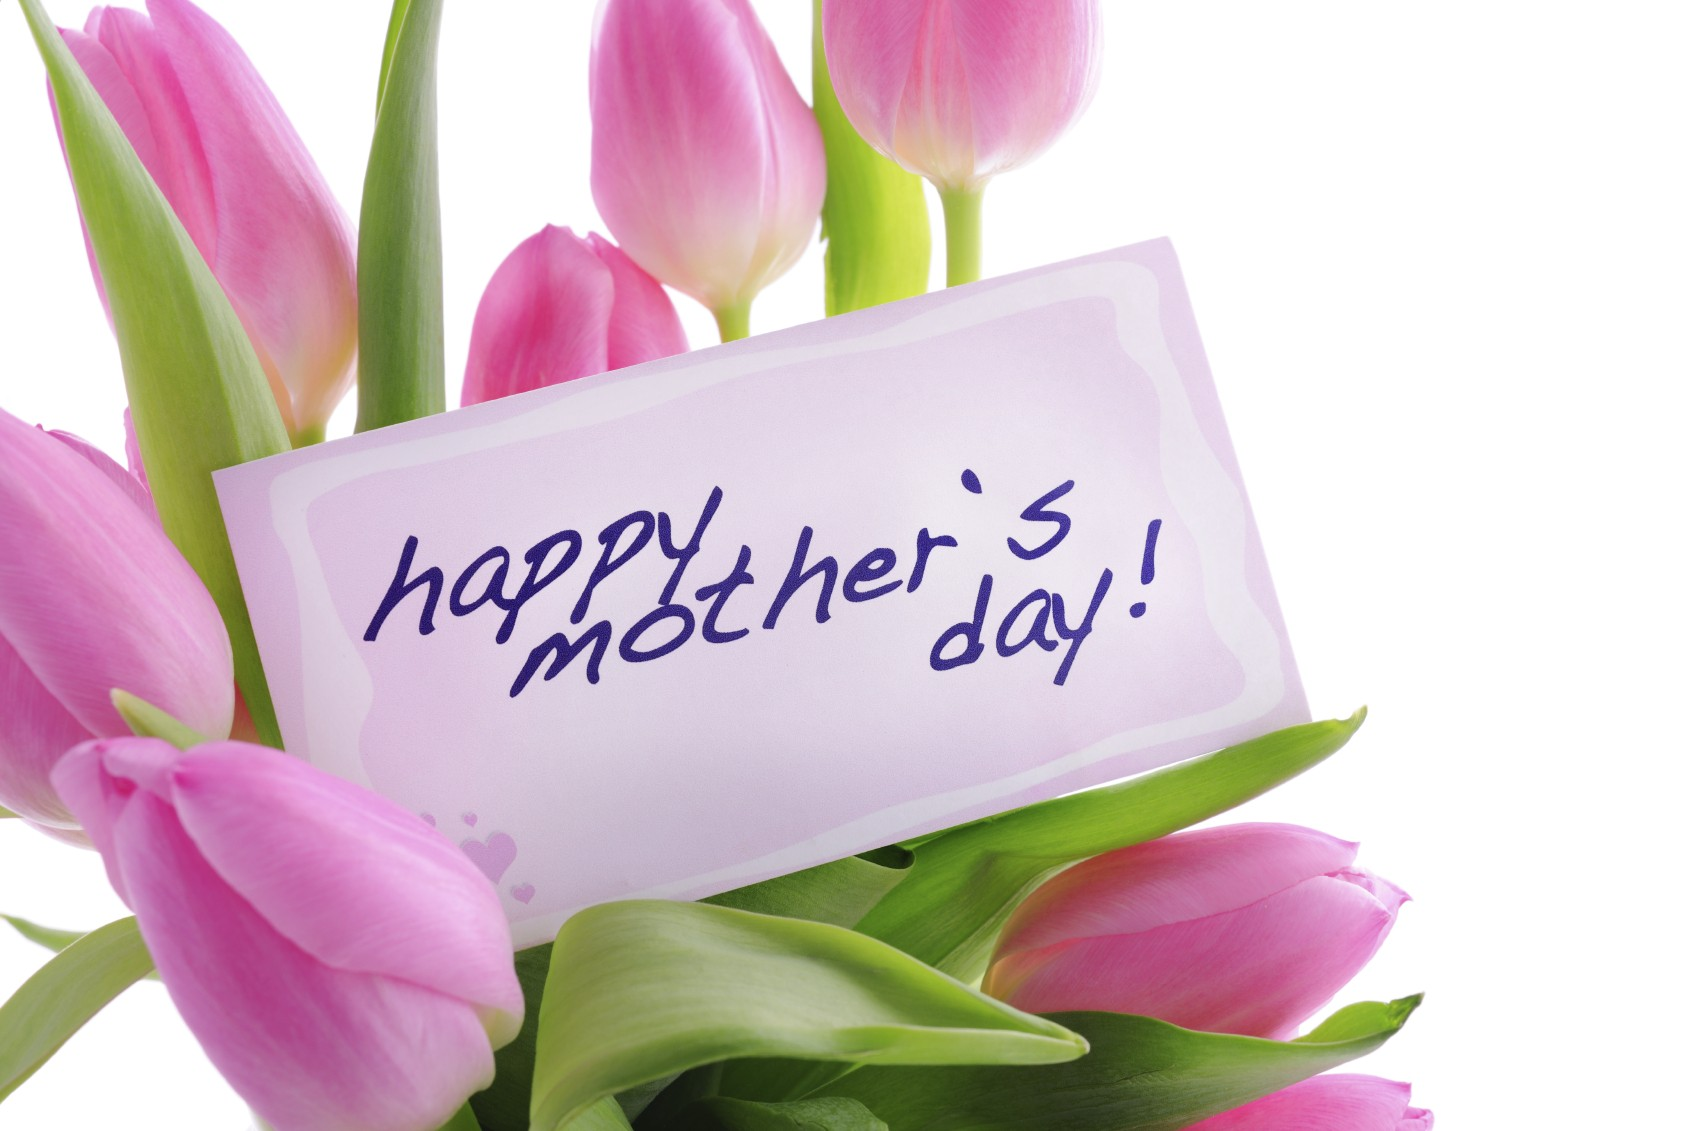 free hd mothers day greeting cards collections download images